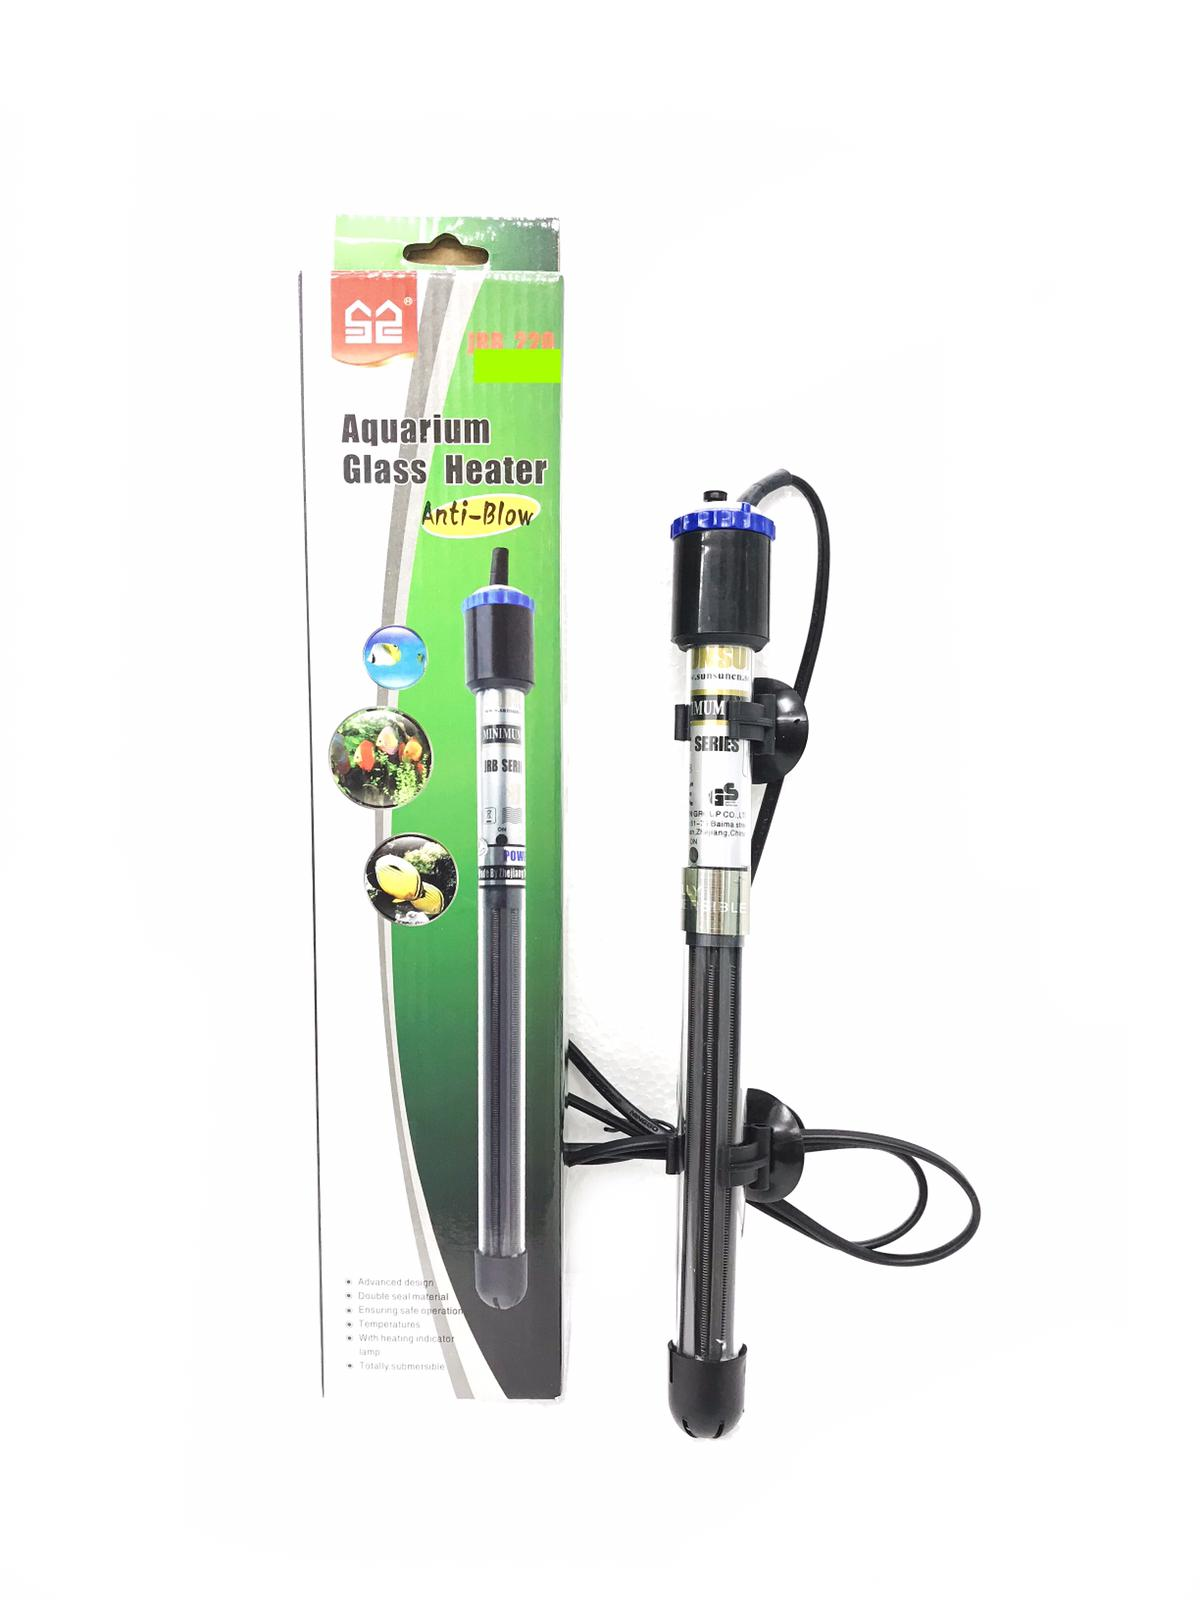 Sunsun Aquarium Glass Heater